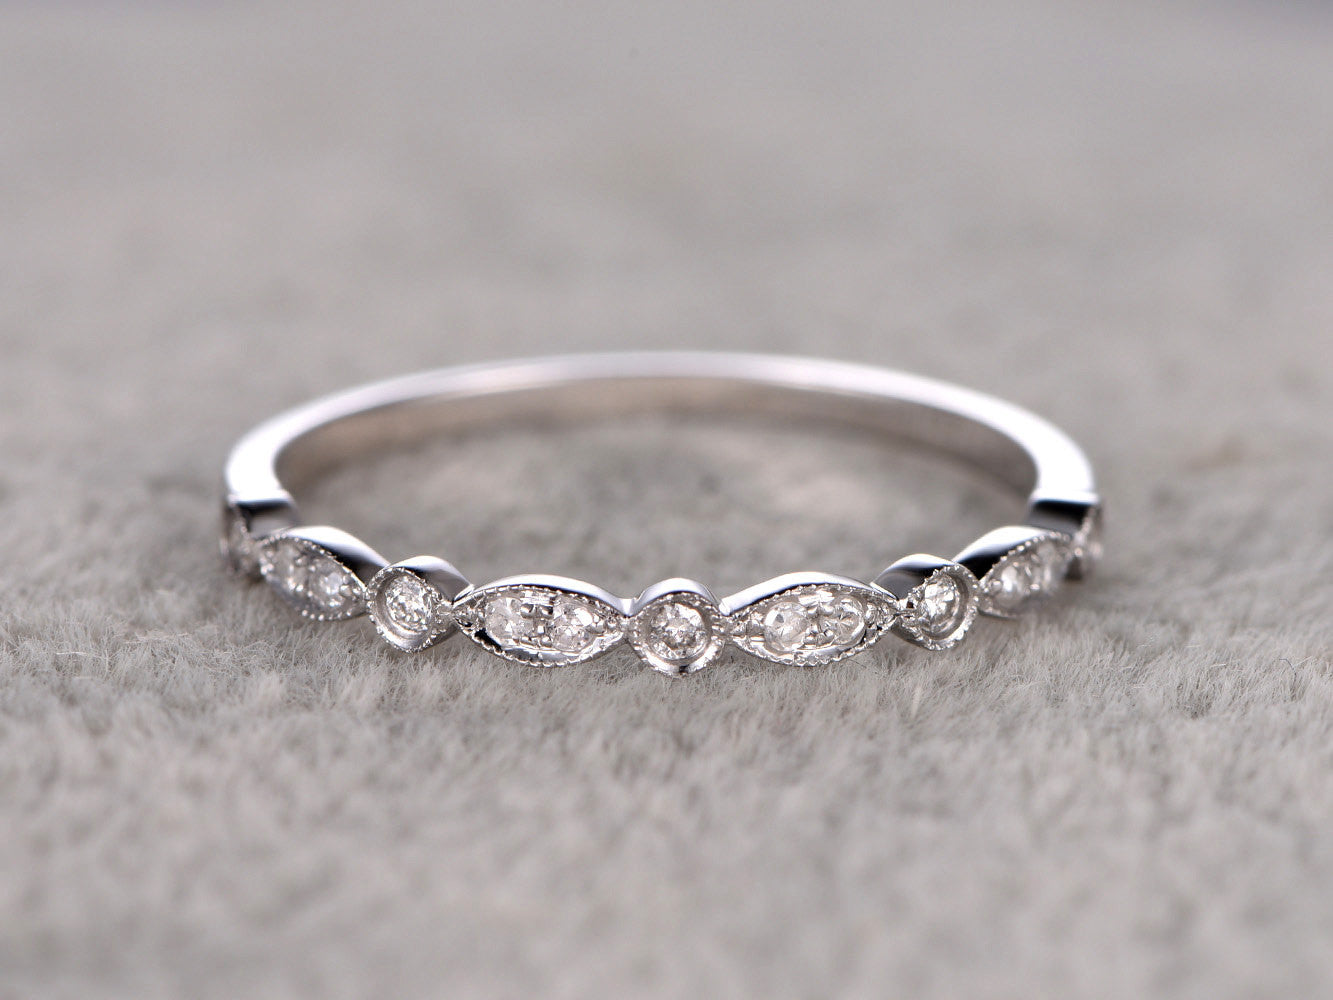 Natural Diamonds,Half Eternity Wedding Ring,Solid 14K White gold,Anniversary Ring,Art deco Marquise style,stacking,milgrain,Matching band